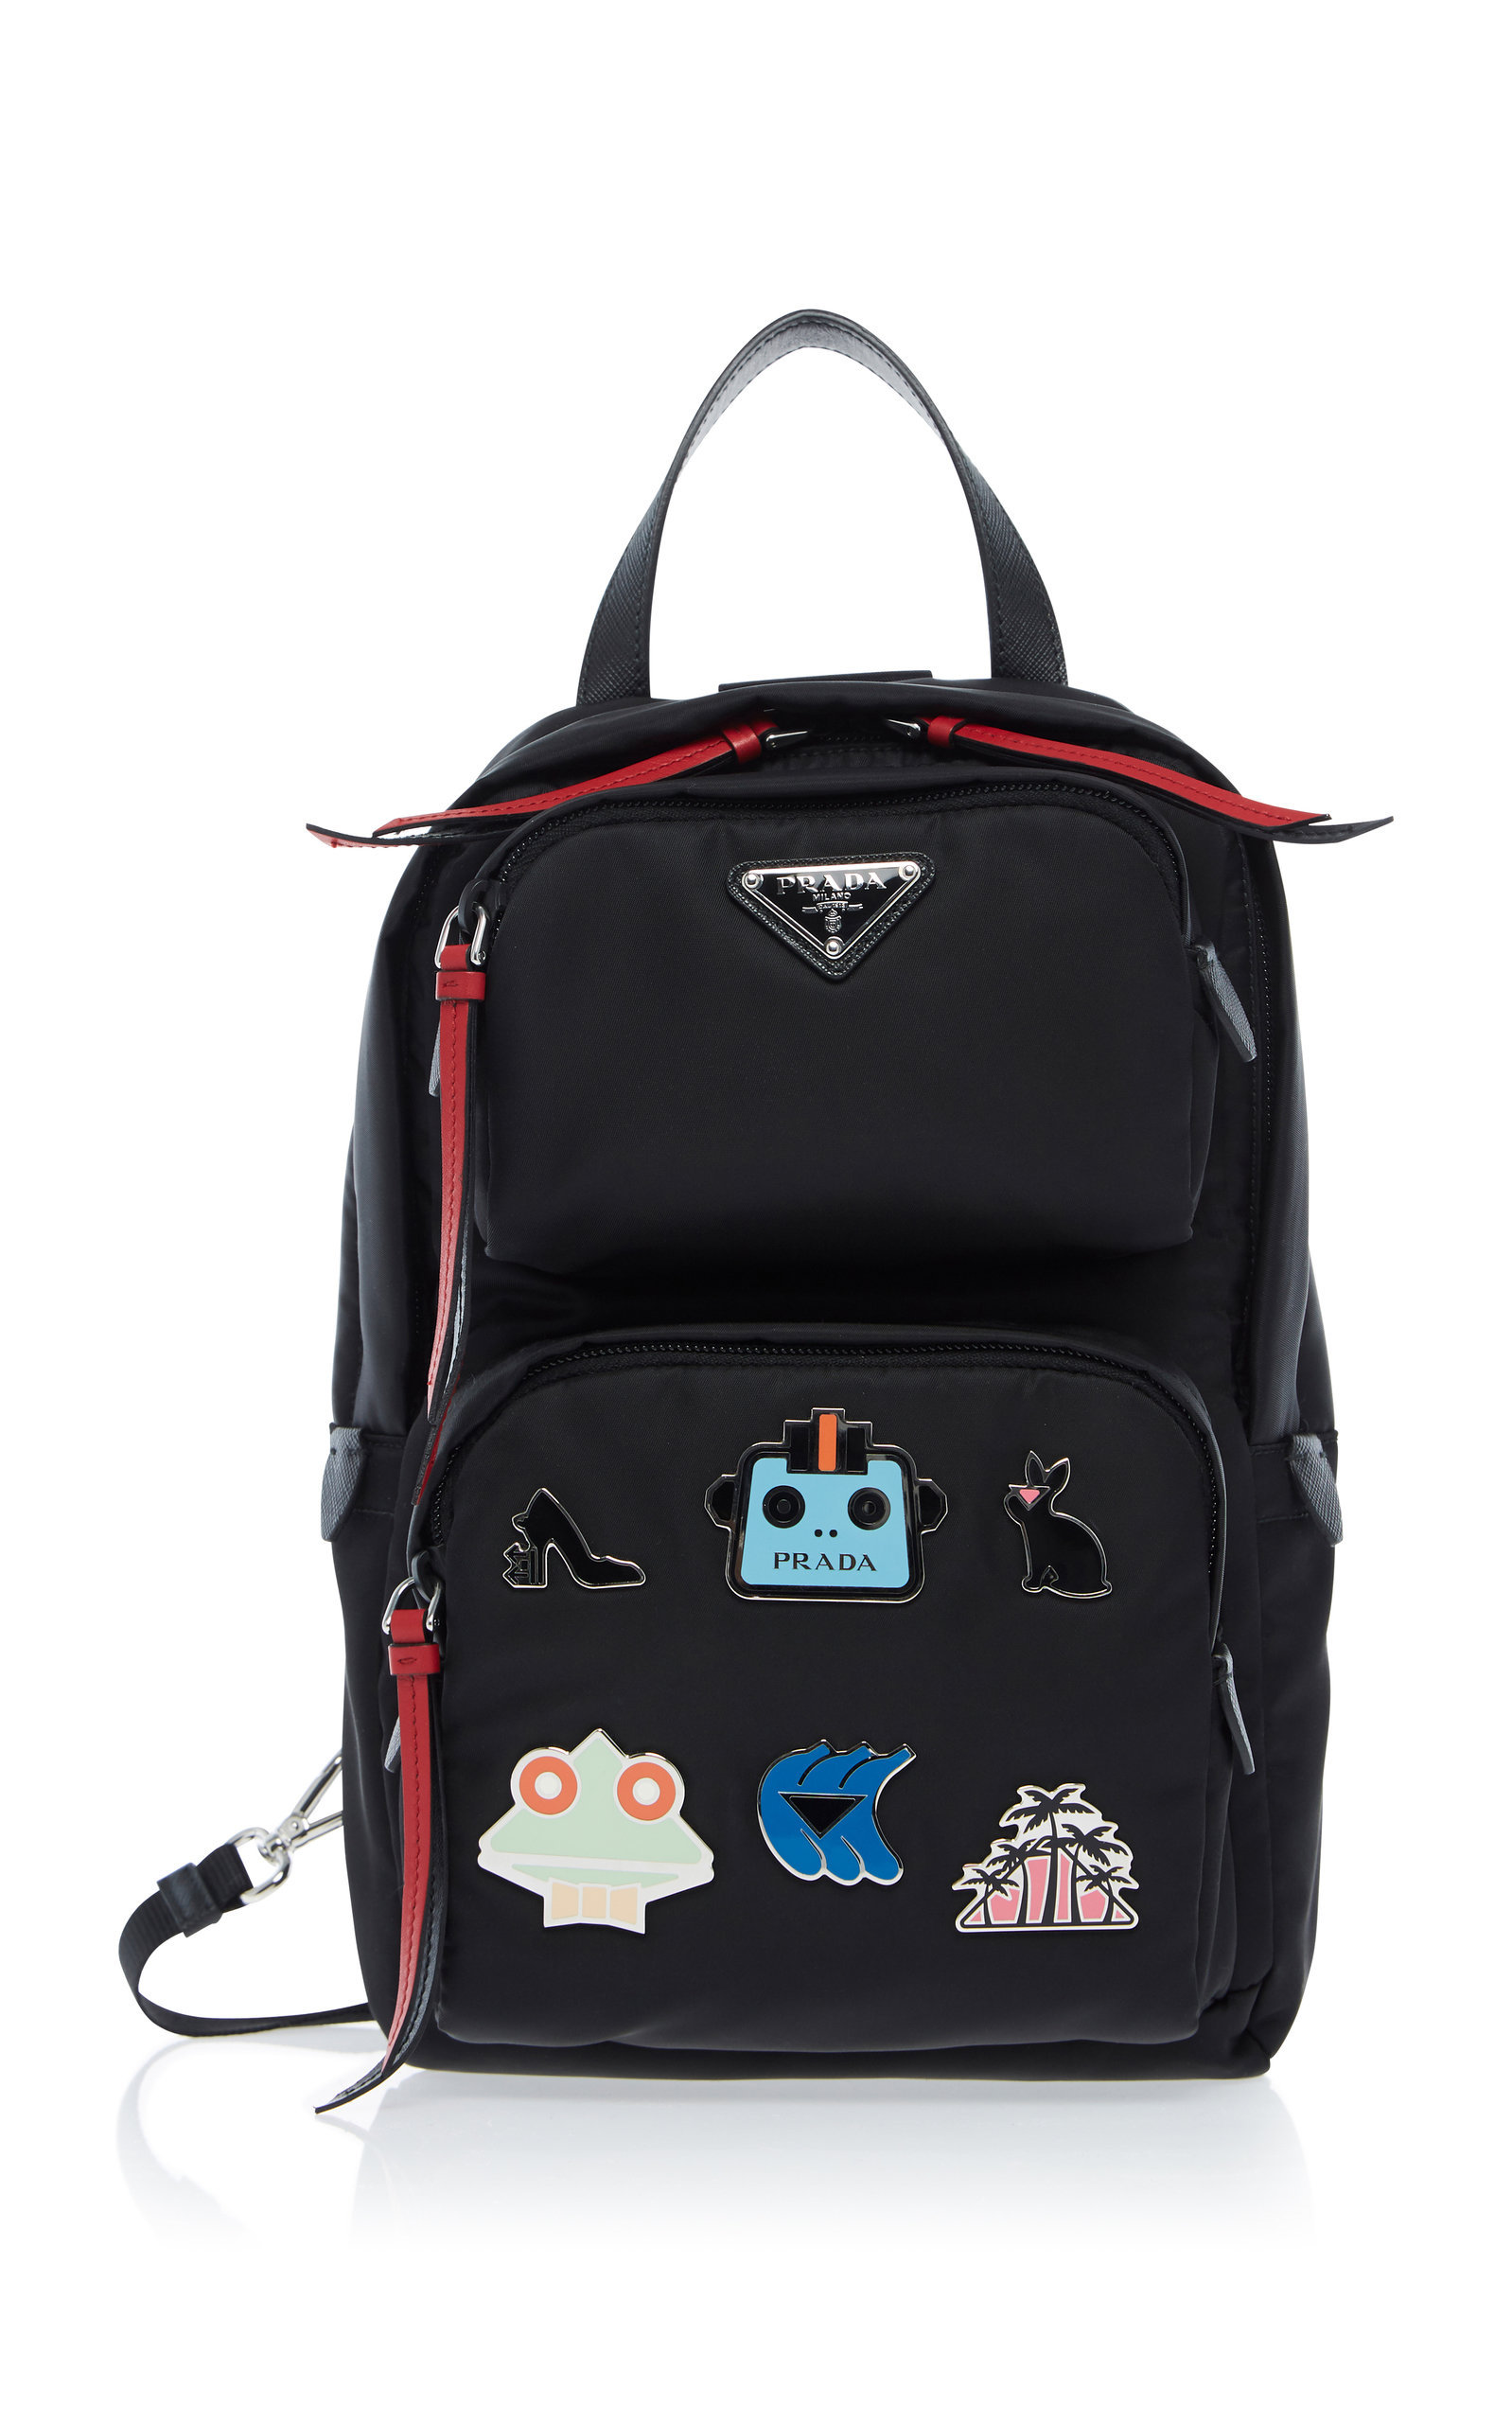 64eec391af65 Vintage and Designer Backpacks - 252 For Sale at 1stdibs